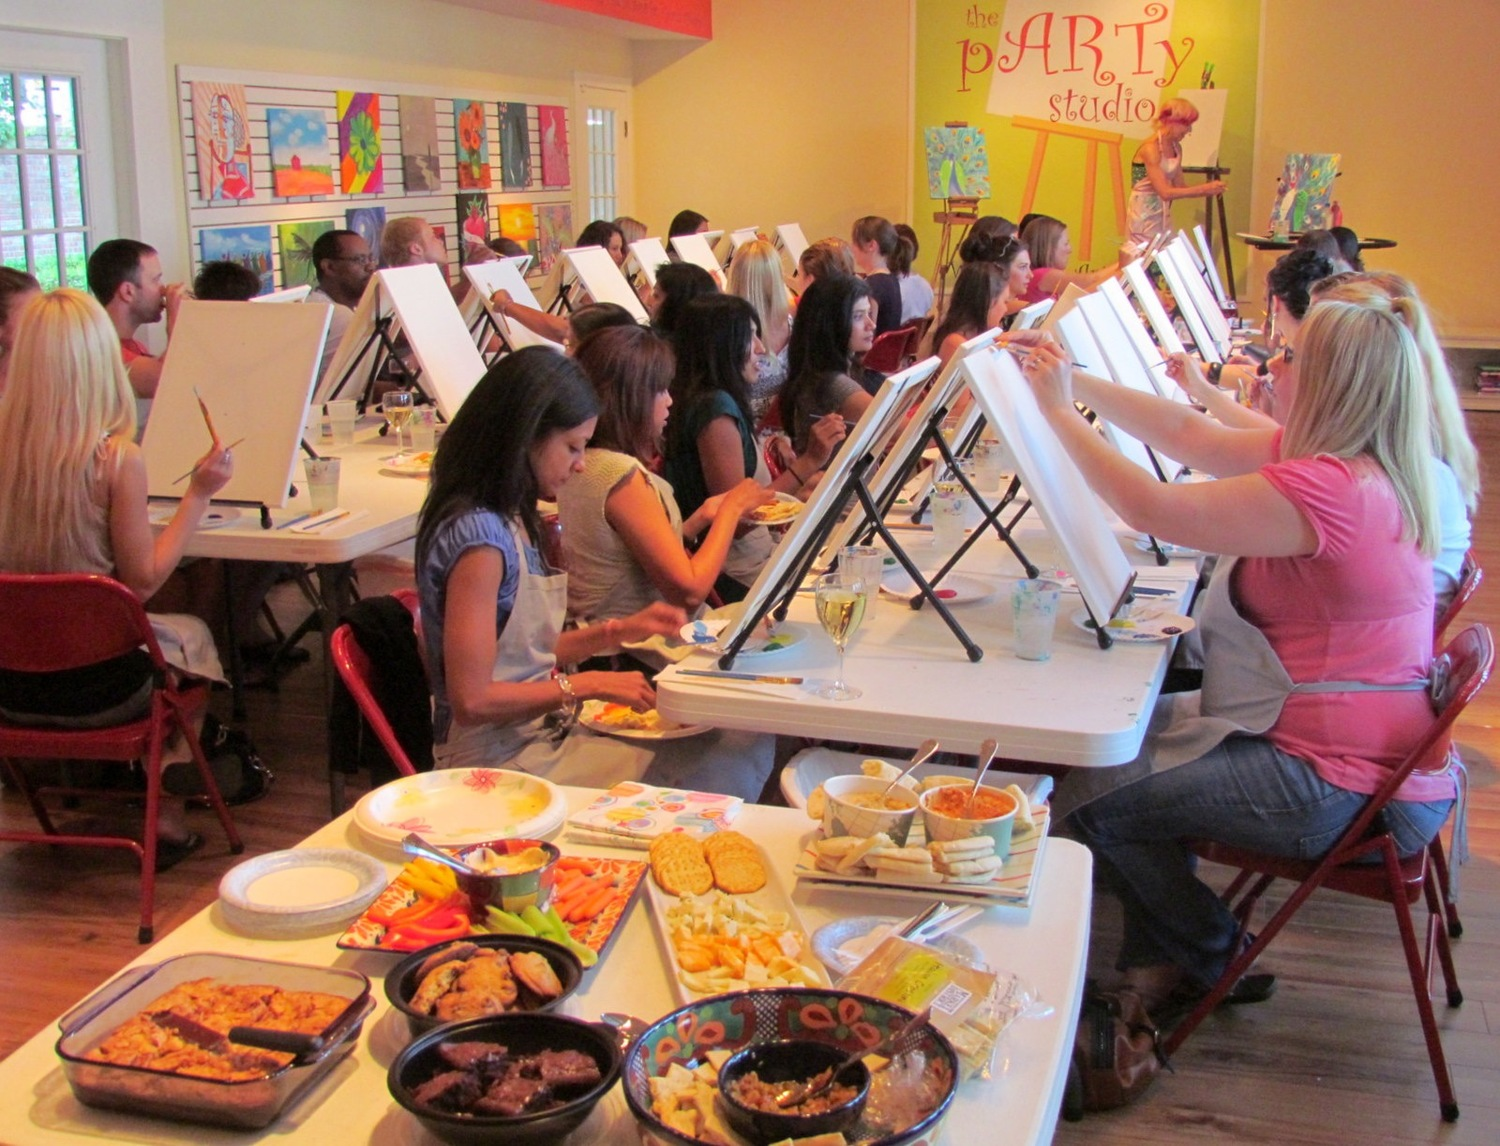 The art scene in Worthington is notable and you can sign up for fun events like art parties